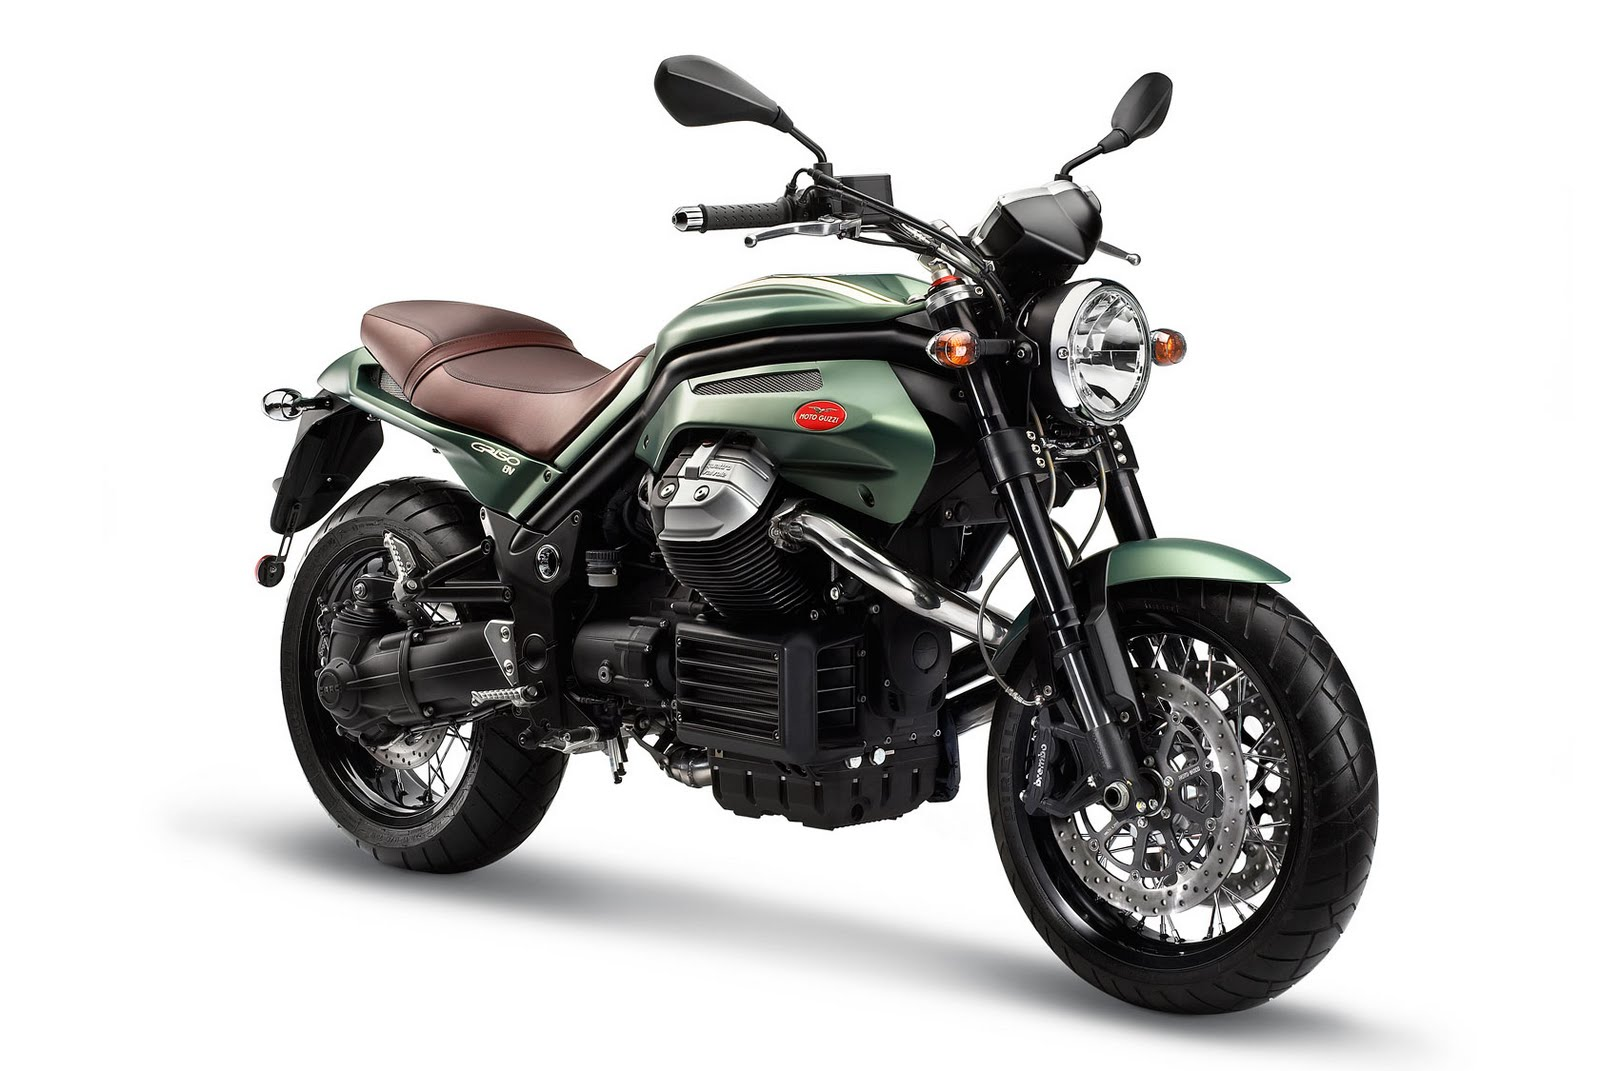 2012 moto guzzi griso 1200 8v review top speed. Black Bedroom Furniture Sets. Home Design Ideas